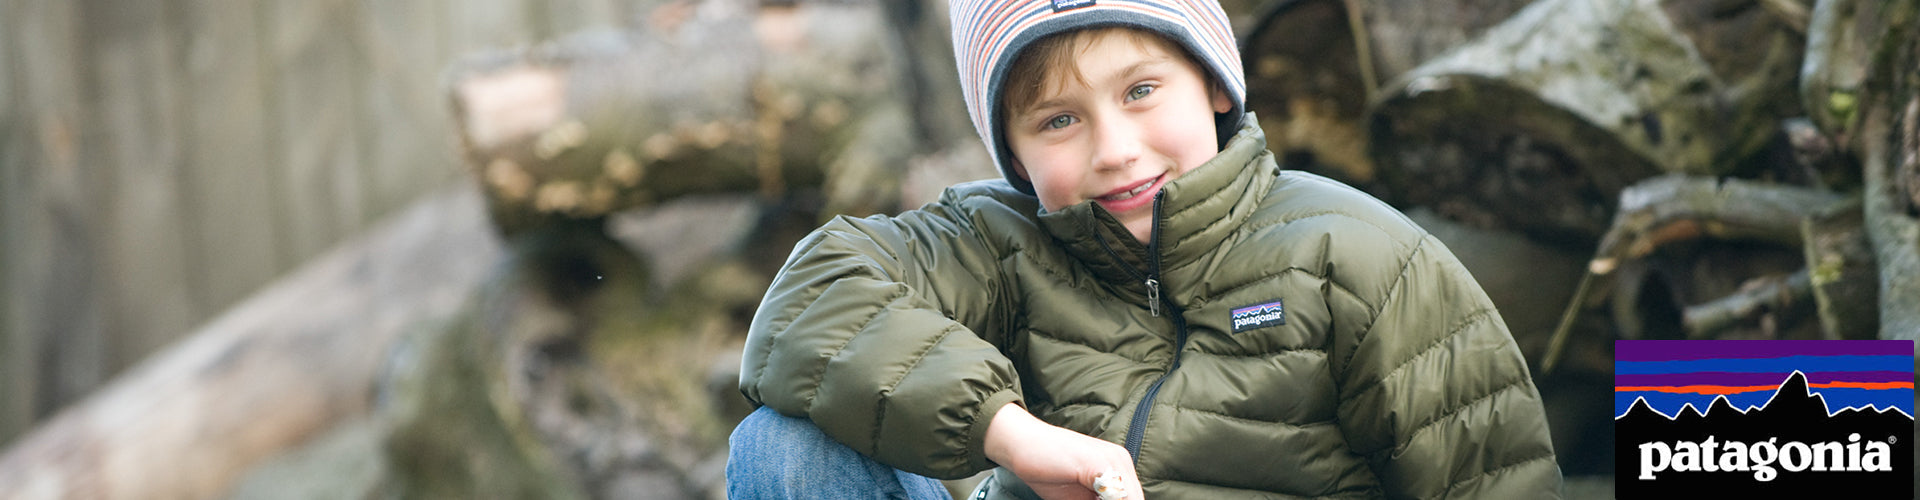 e9f6c0b186 Patagonia Kids' and Infant Clothing | The Little Adventure Shop